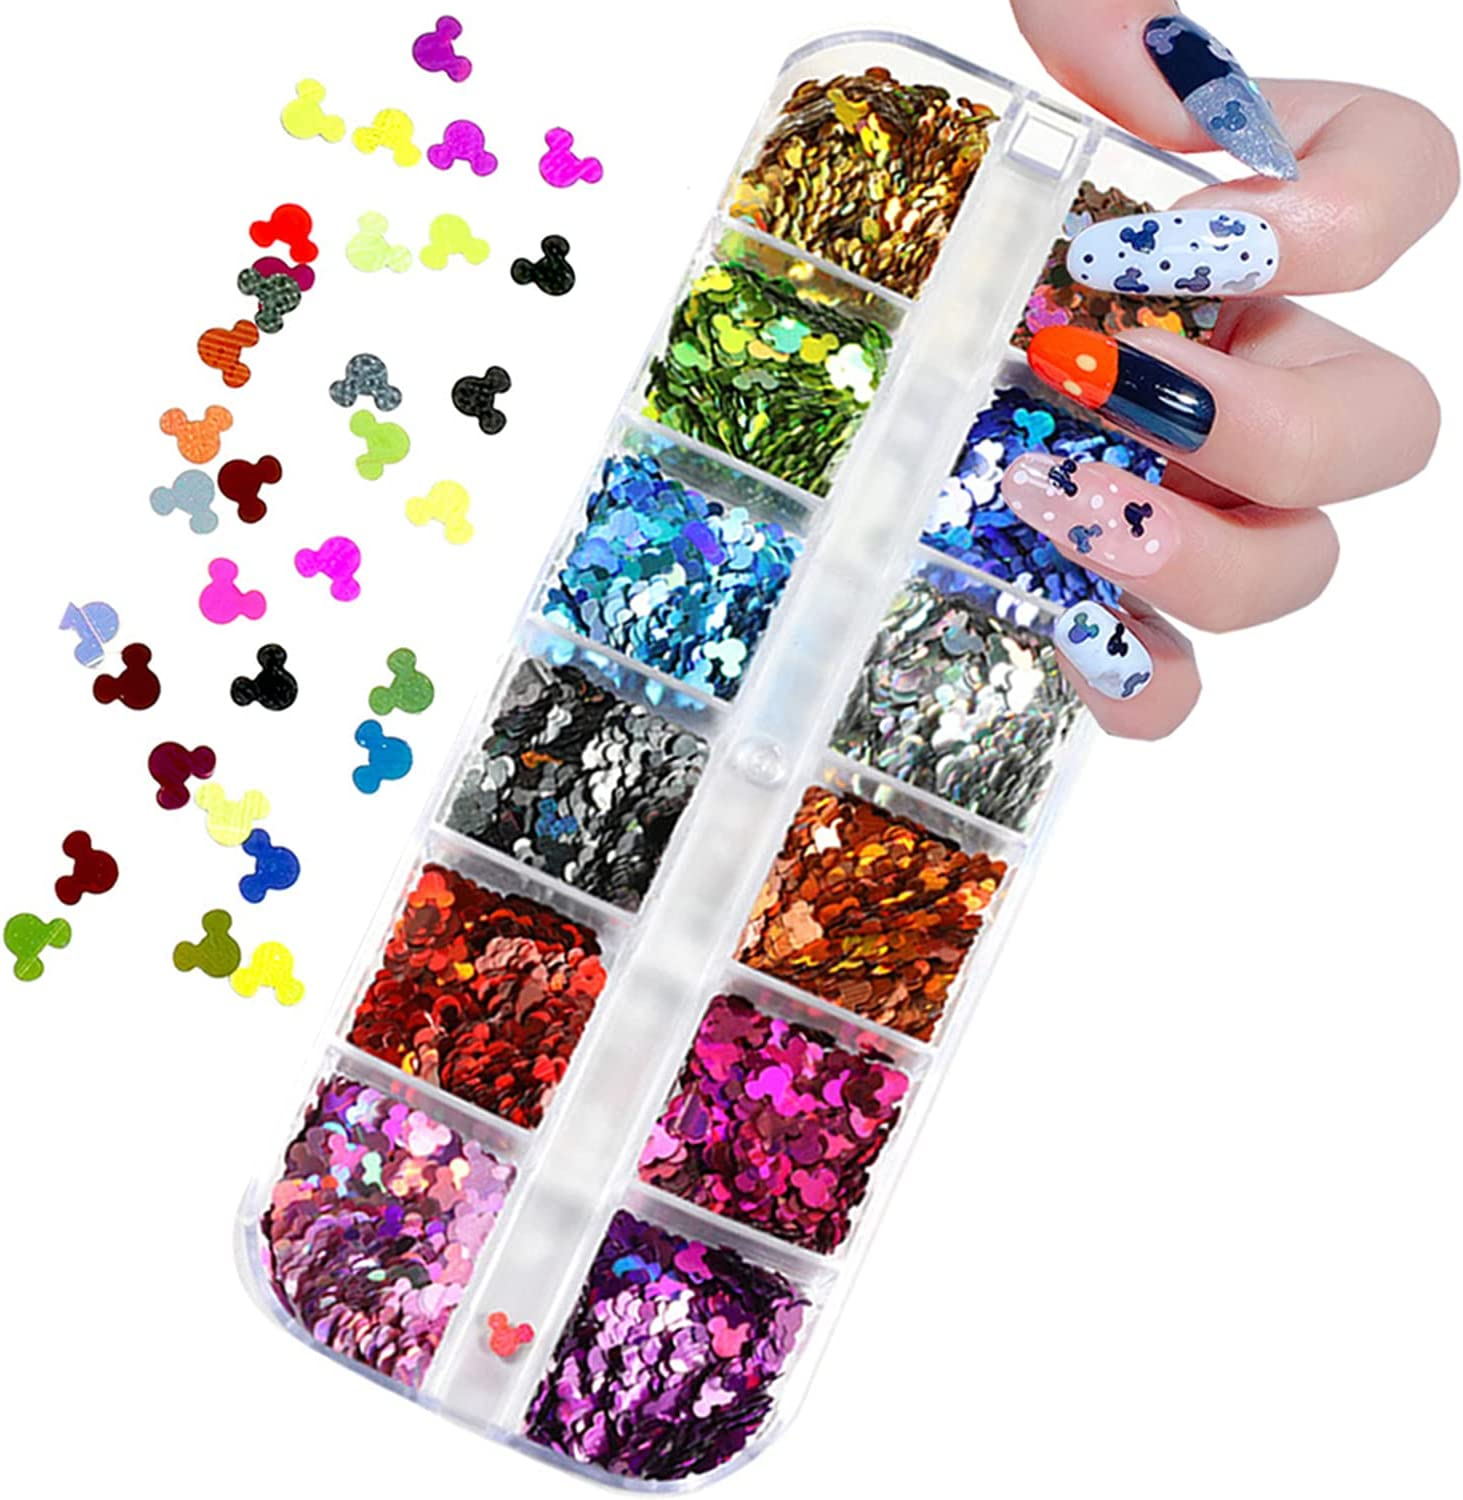 Buy 12 Colors Mickey Mouse Nail Glitter Sequins Nail Art Supplies 3D  Holographic Nails Glitter Flakes Mickey Nail Art Stickers Decals Shiny  Confetti Glitters Nail Designs for Acrylic Nails Decor Online in